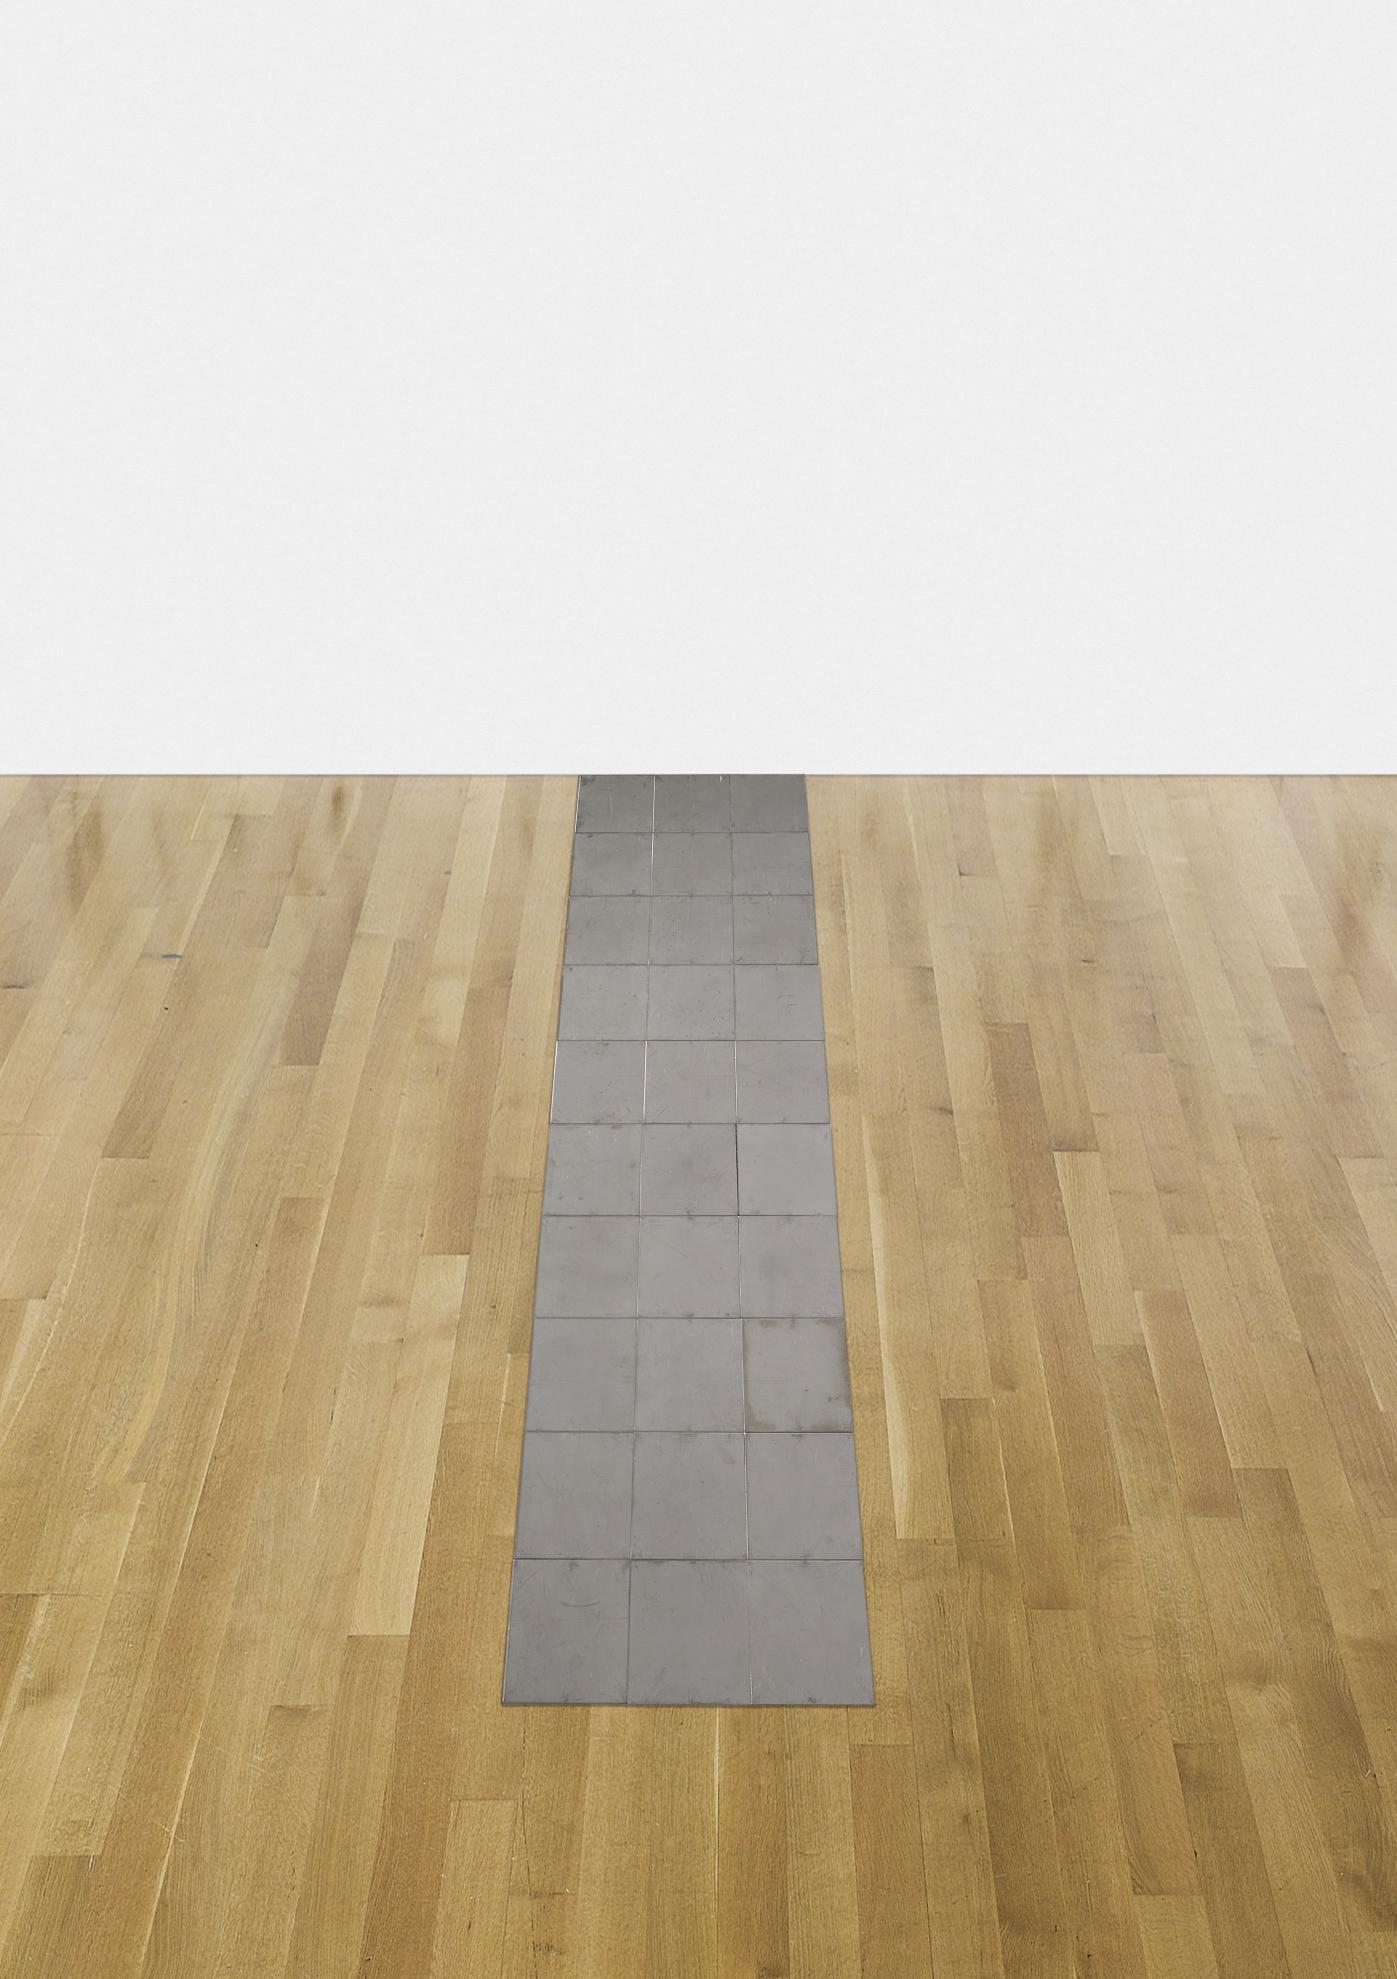 Carl Andre-Small Equivalent V-1975